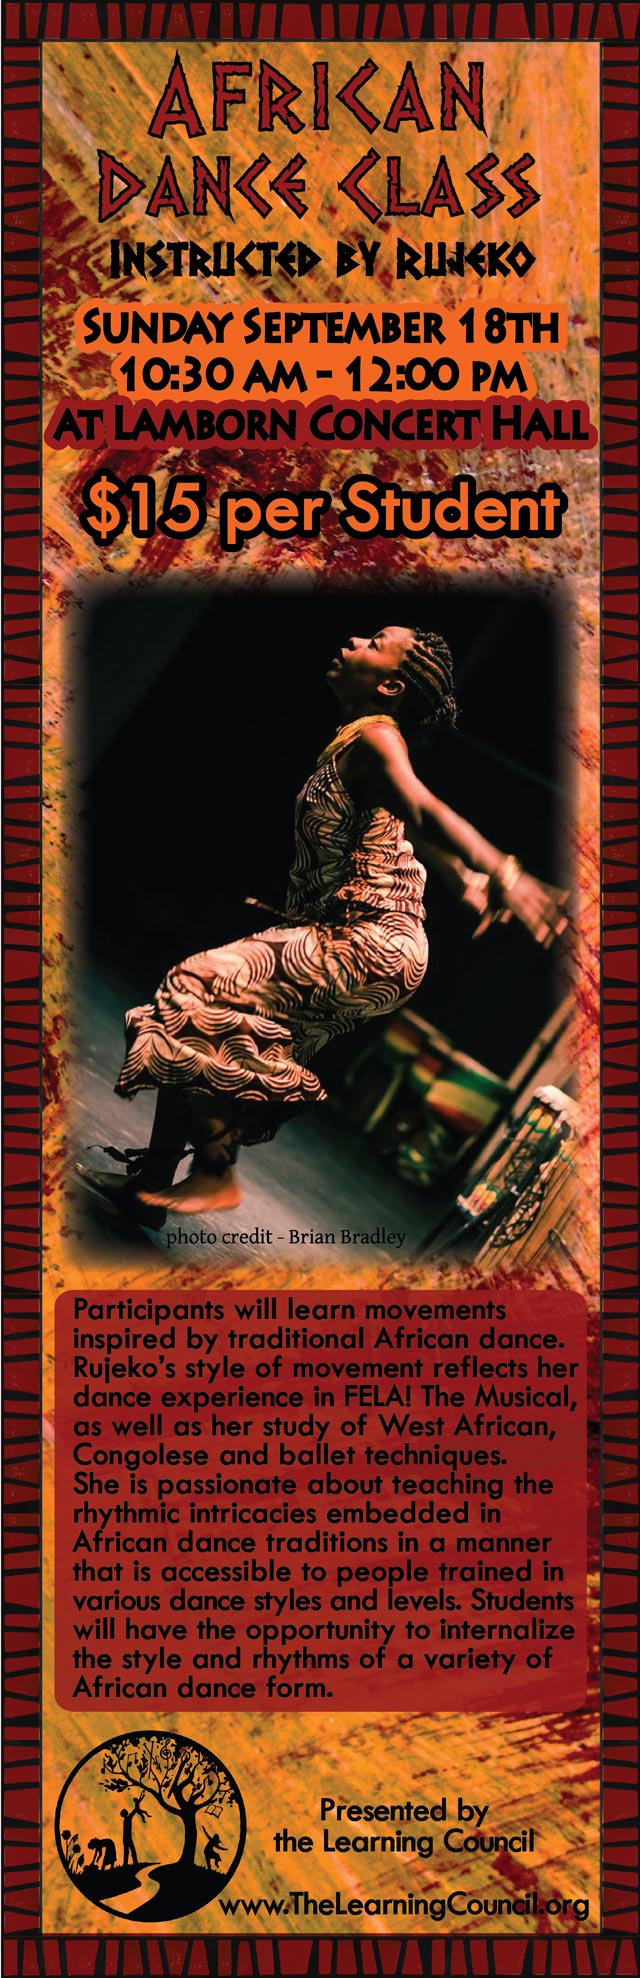 African Dance Class poster image